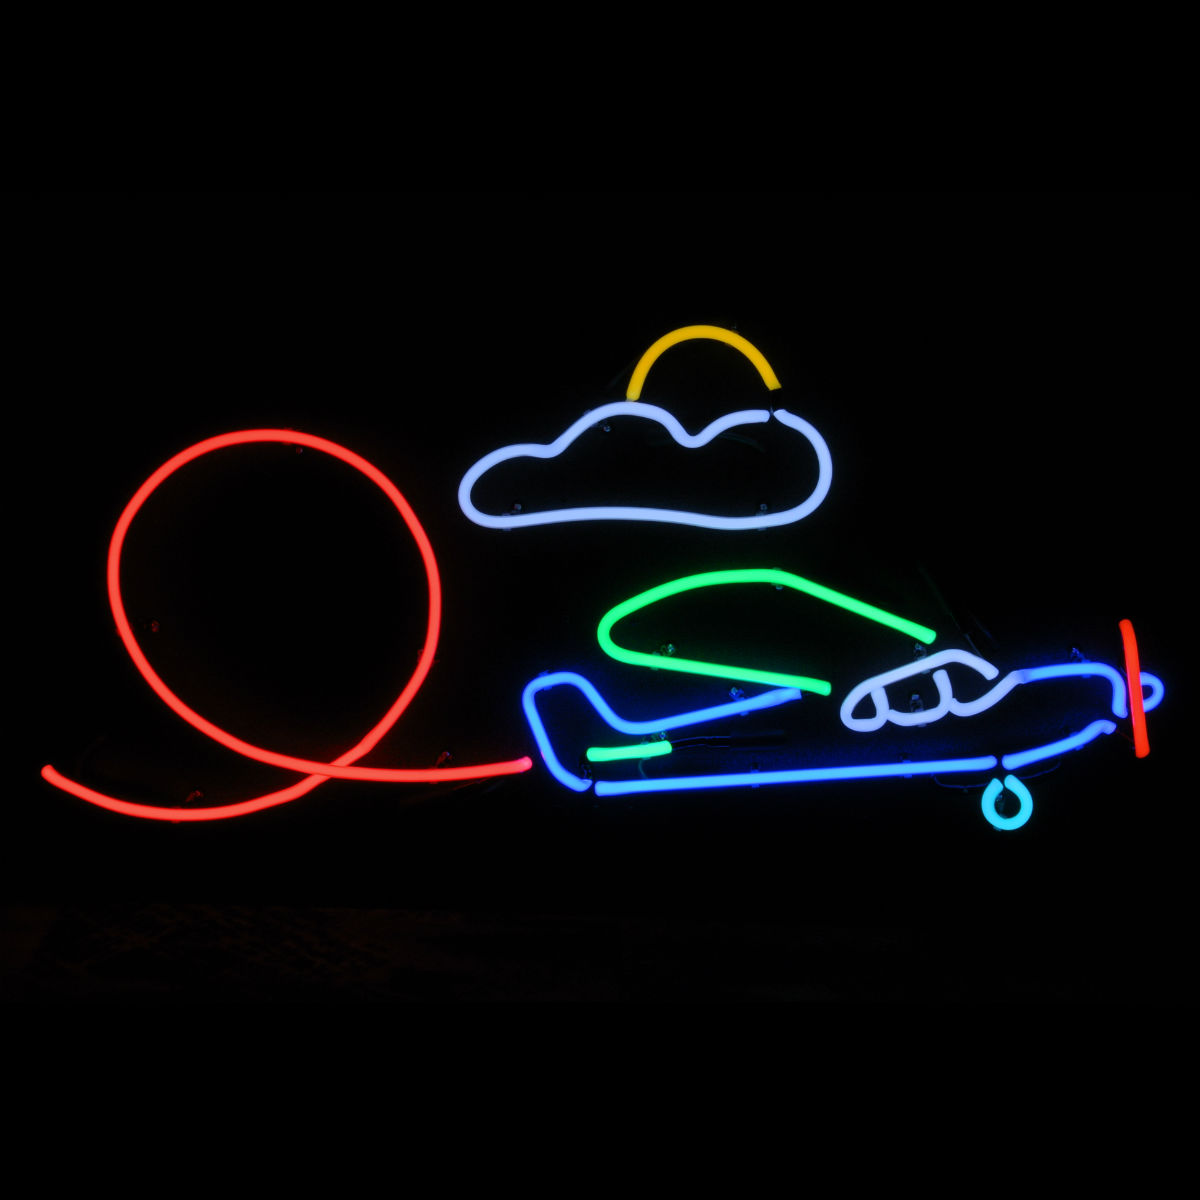 Custom Airplane Neon Artworks by John Barton - BartonNeonMagic.com